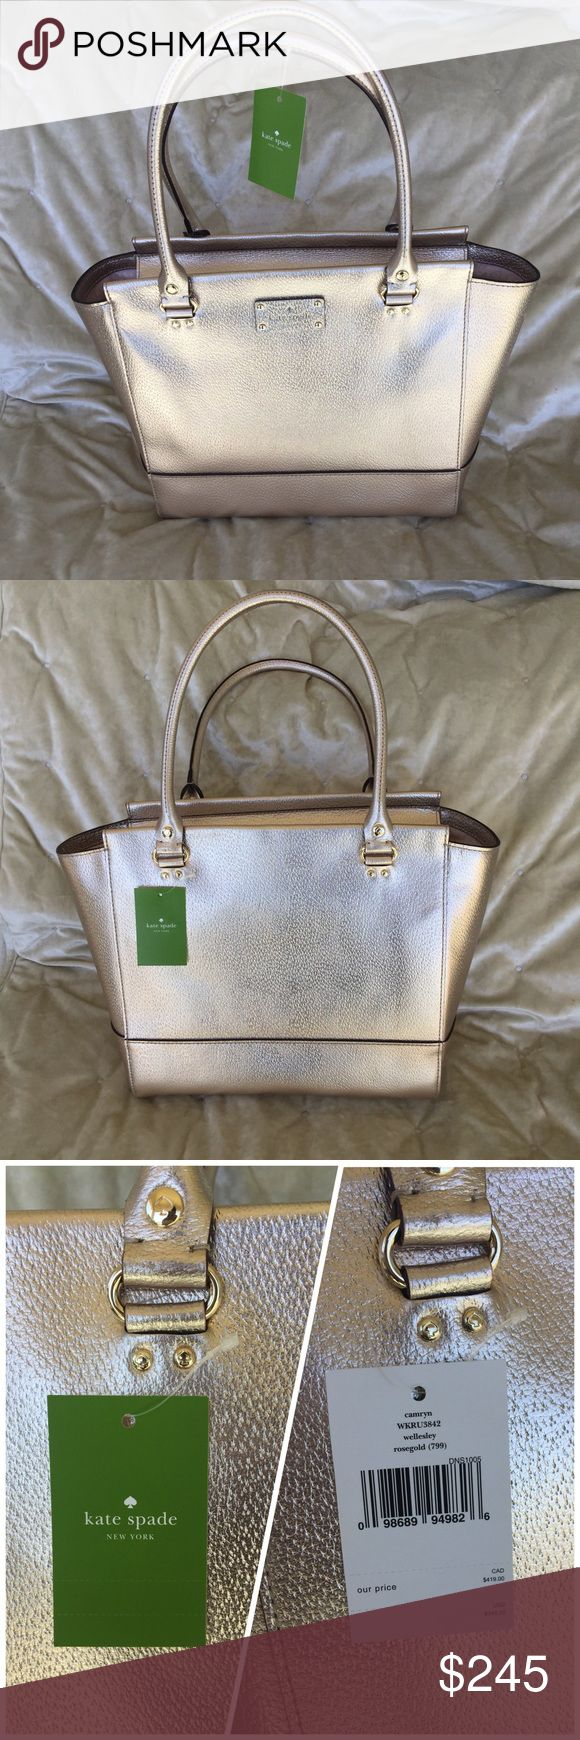 """Kate Spade Camryn Wellesley Bag, Rose Gold NWT Kate Spade Camryn Wellesley Bag, Rose Gold NWT  11"""" length x 11"""" bottom width, 16"""" top width x 6"""" depth  This gorgeous bag is not available in stores but you can get it here! I ship within 24 hours.  No trades, no offers, price is firm. kate spade Bags"""